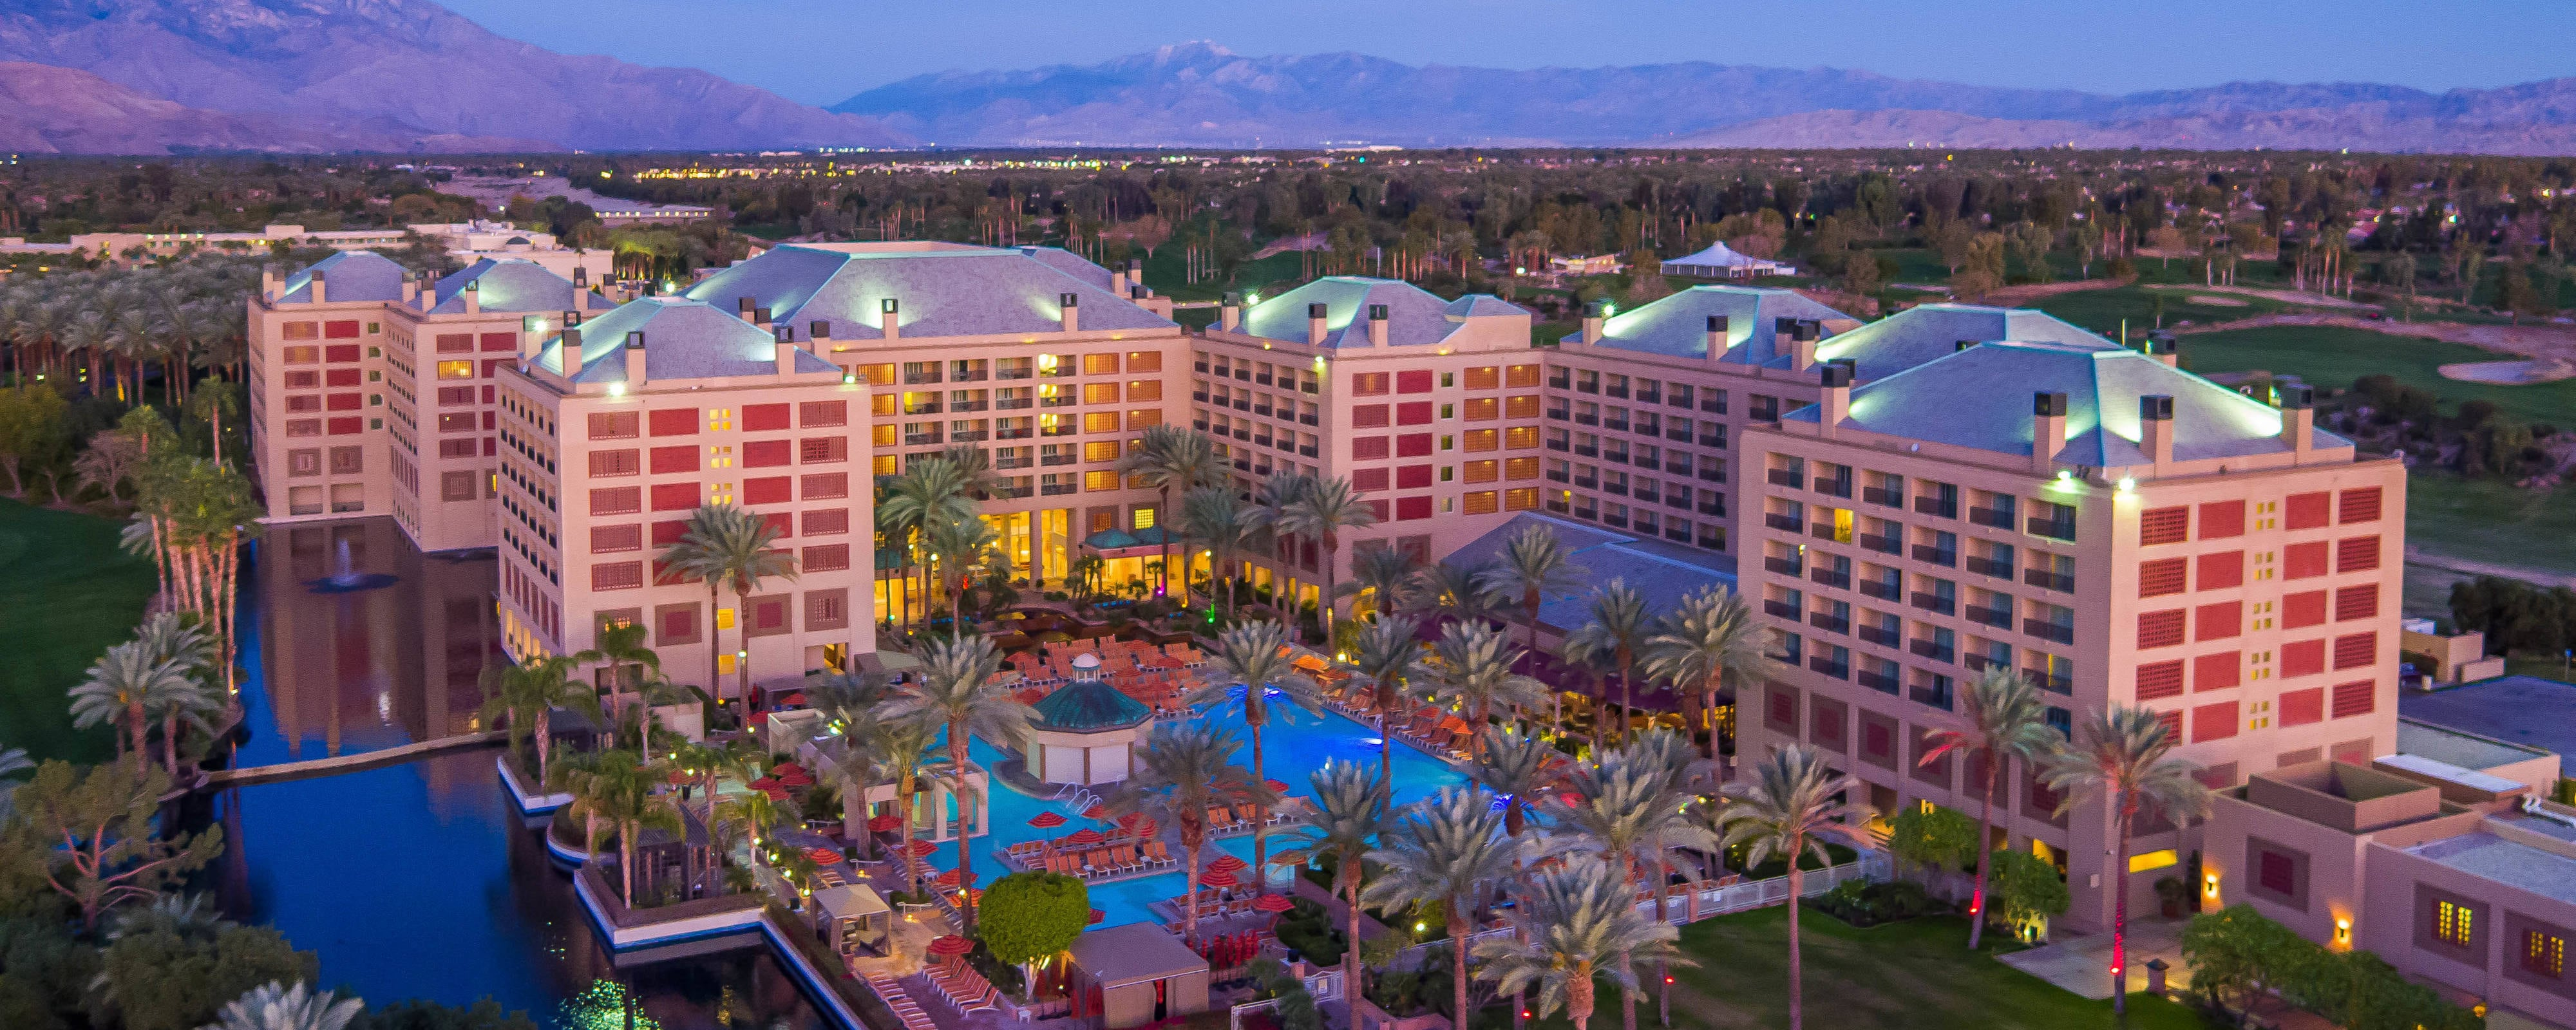 Renaissance Indian Wells Resort And Spa By Marriott